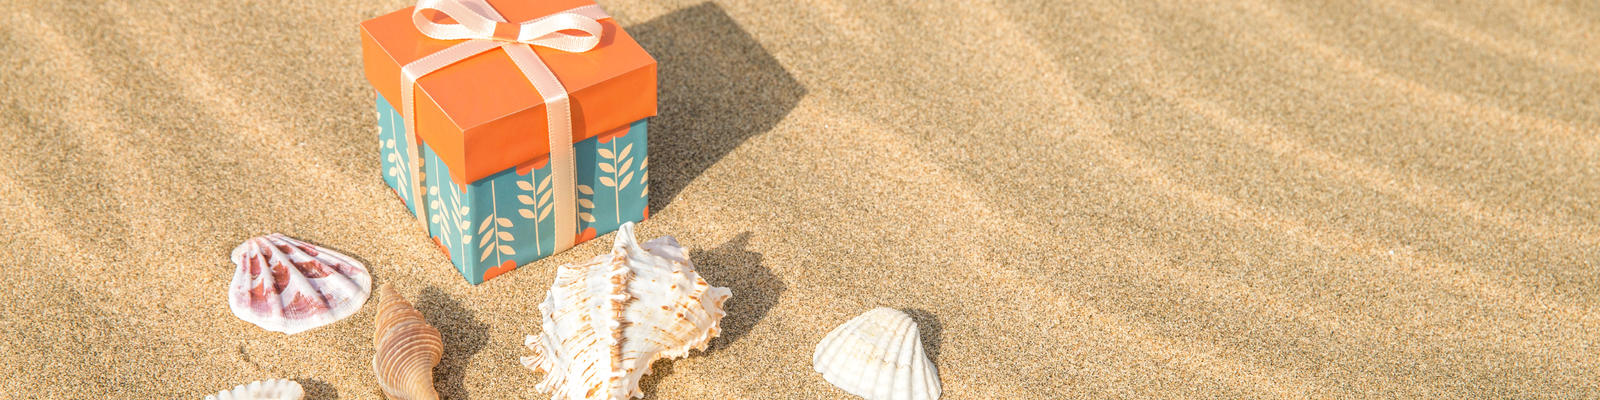 5 Lines That Make Gift Giving Easy With Cruise Gift Cards (Photo: mogilami/Shutterstock)